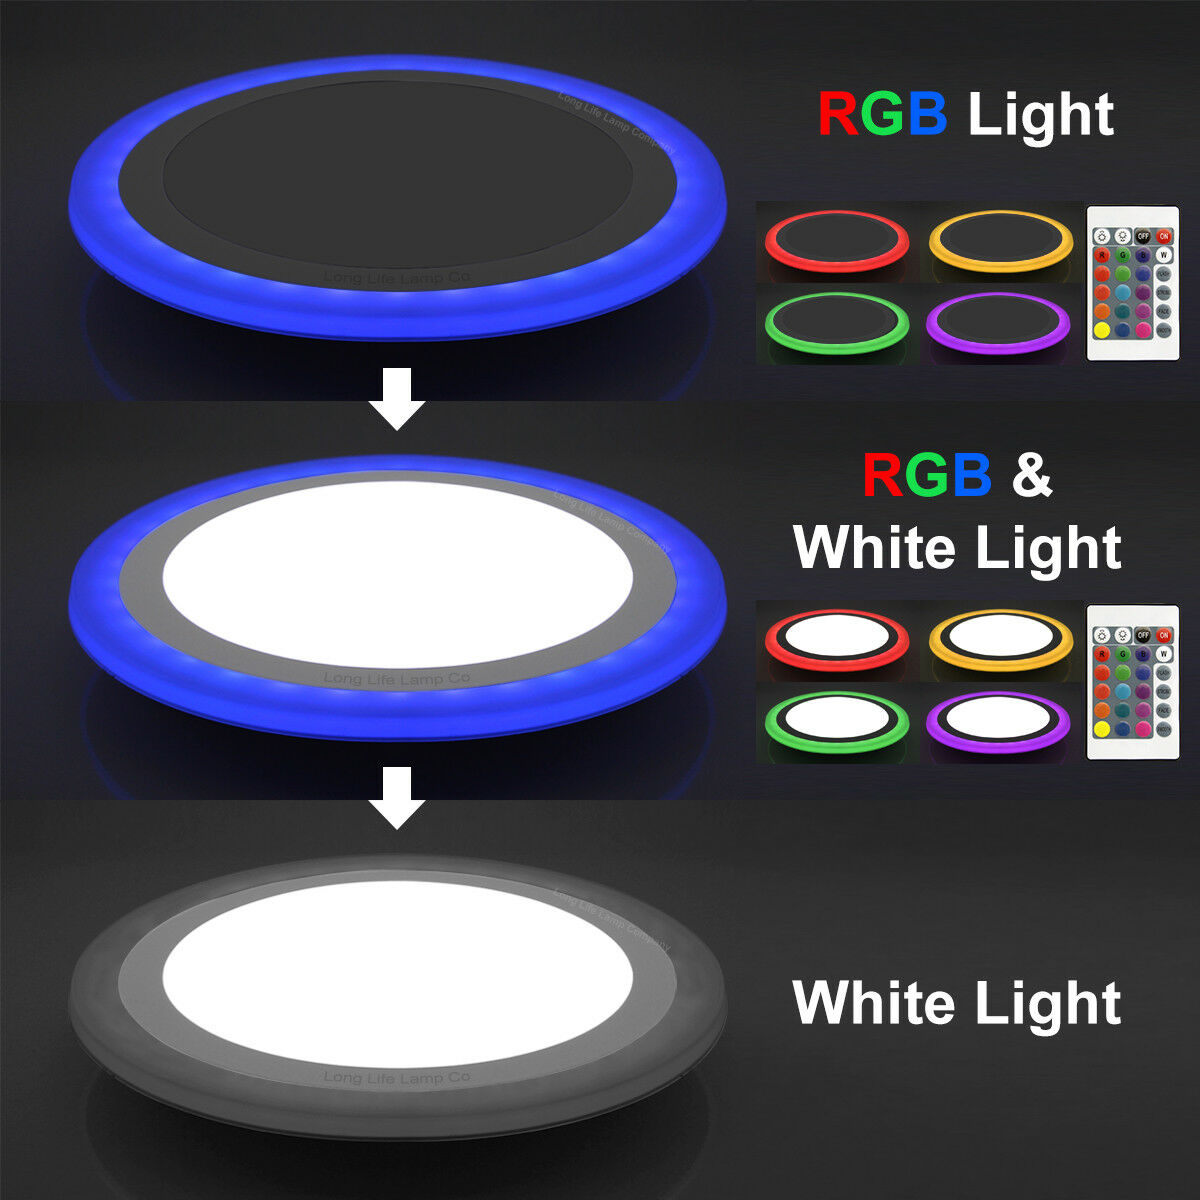 Colour Changing Ring Is An Amazing And Unique Concept In Led Panel Light The Of Can Be Changed With Remote 16 Effects